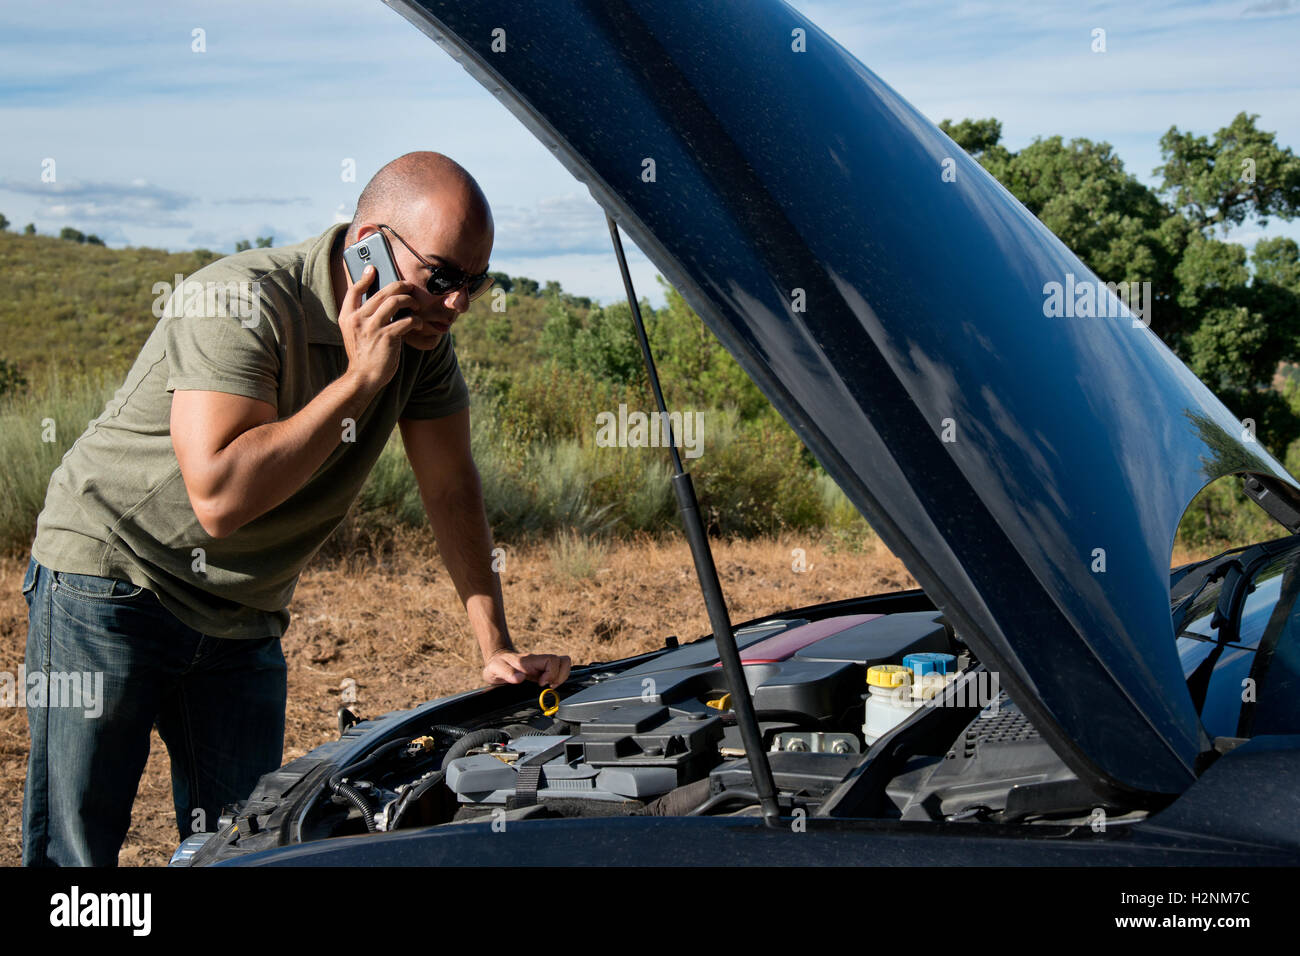 Close up of a broken down car, engine open, in a rural area and the driver looking at the engine - Stock Image